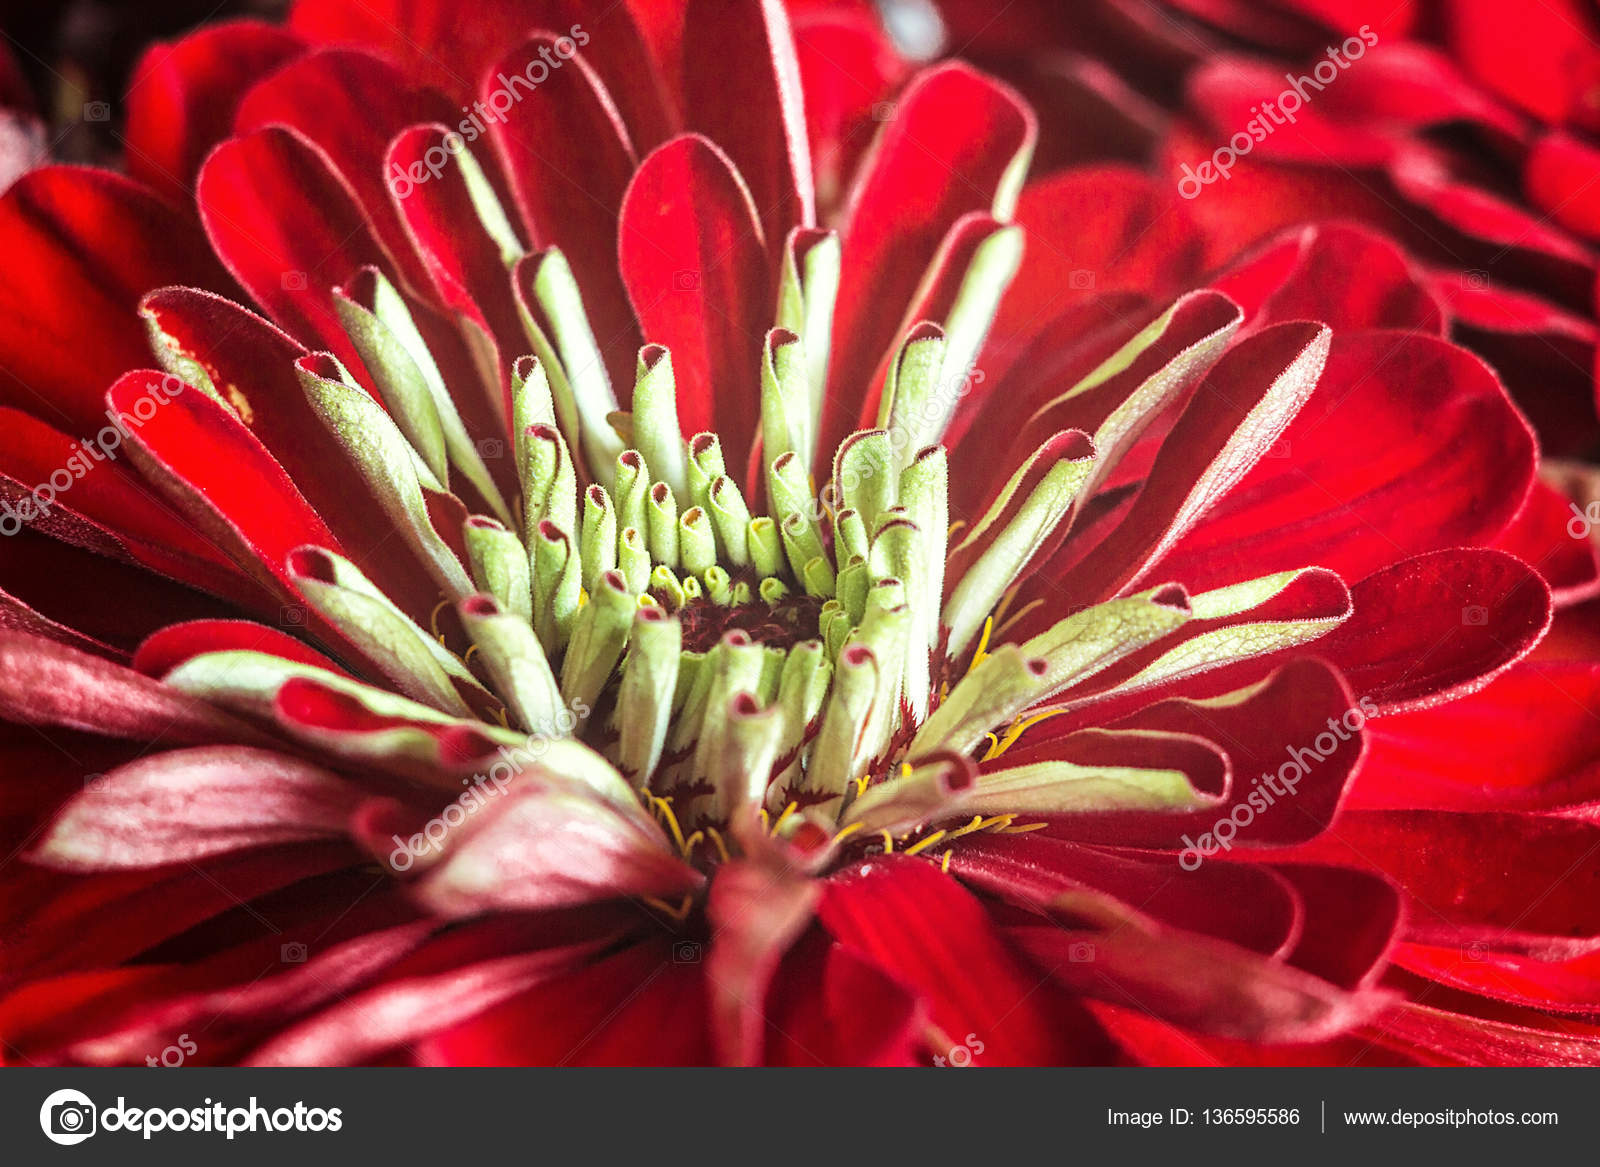 Zinnia elegans known as youth and age common zinnia or elegant zinnia elegans known as youth and age common zinnia or elegant zinnia an annual flowering plant of the genus zinnia one of the best known zinnias izmirmasajfo